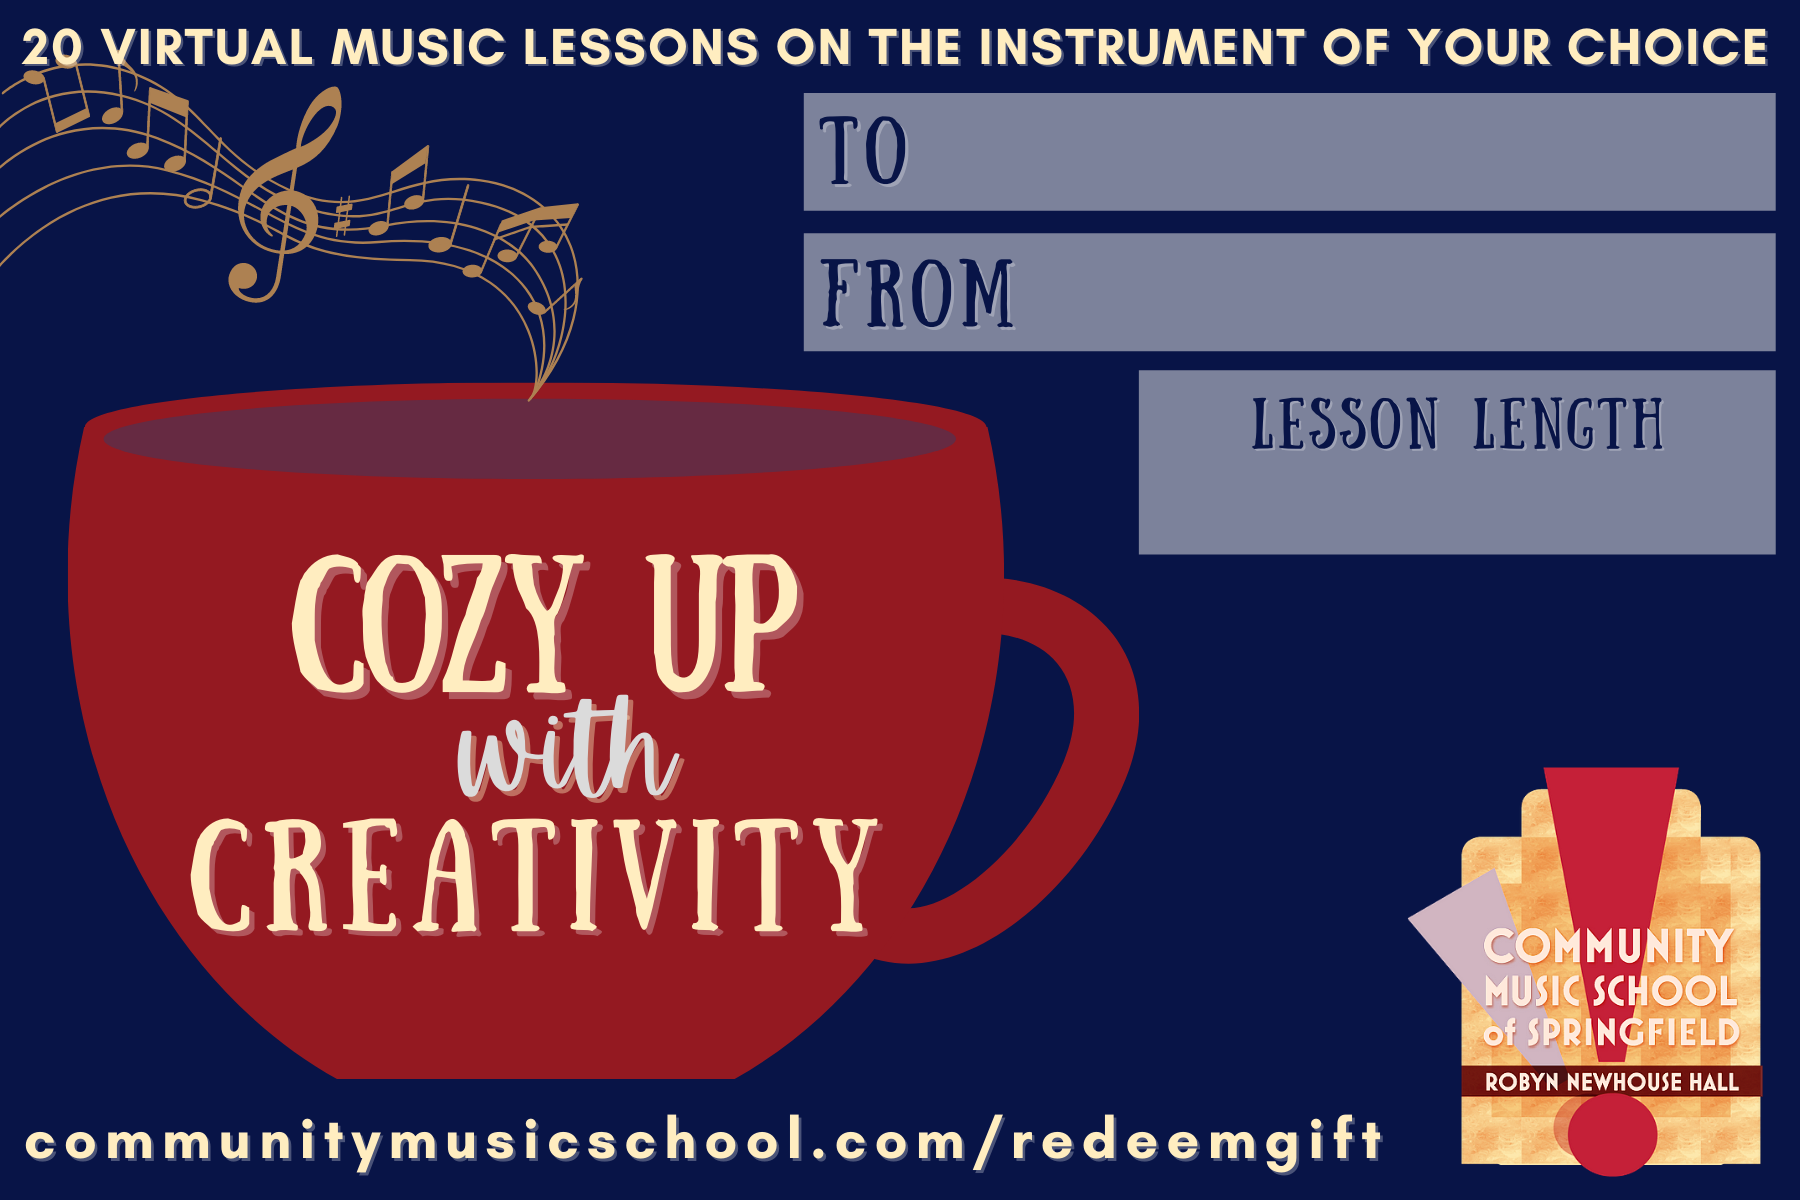 Gift package card for trial lessons, red silhouette of coffee mug with text on the front and music coming out of the top as steam, blue background